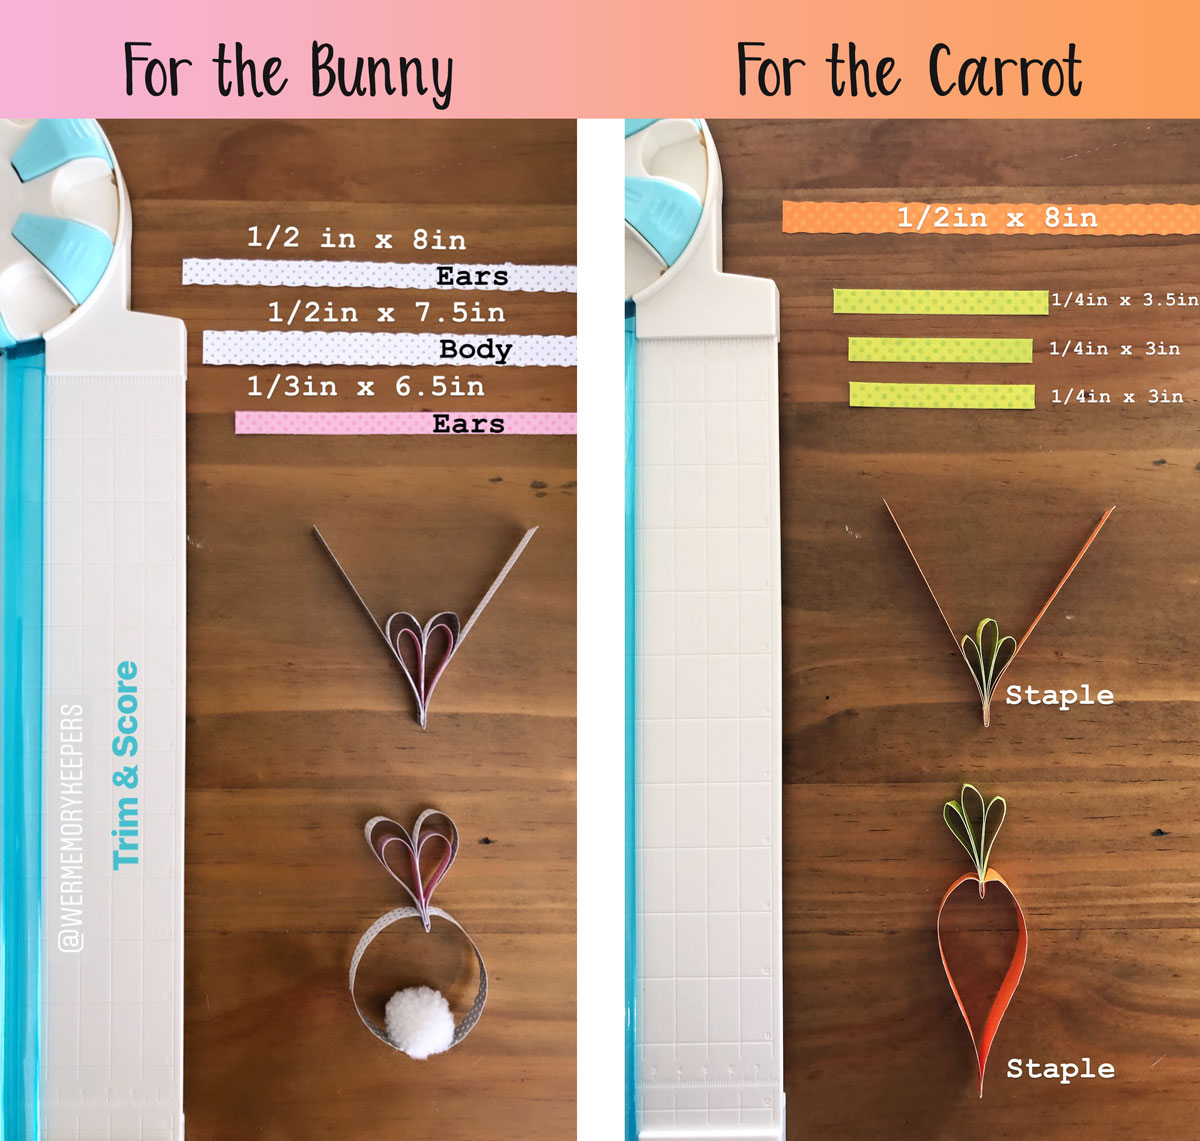 How to make a bunny and carrot garland with paper strips